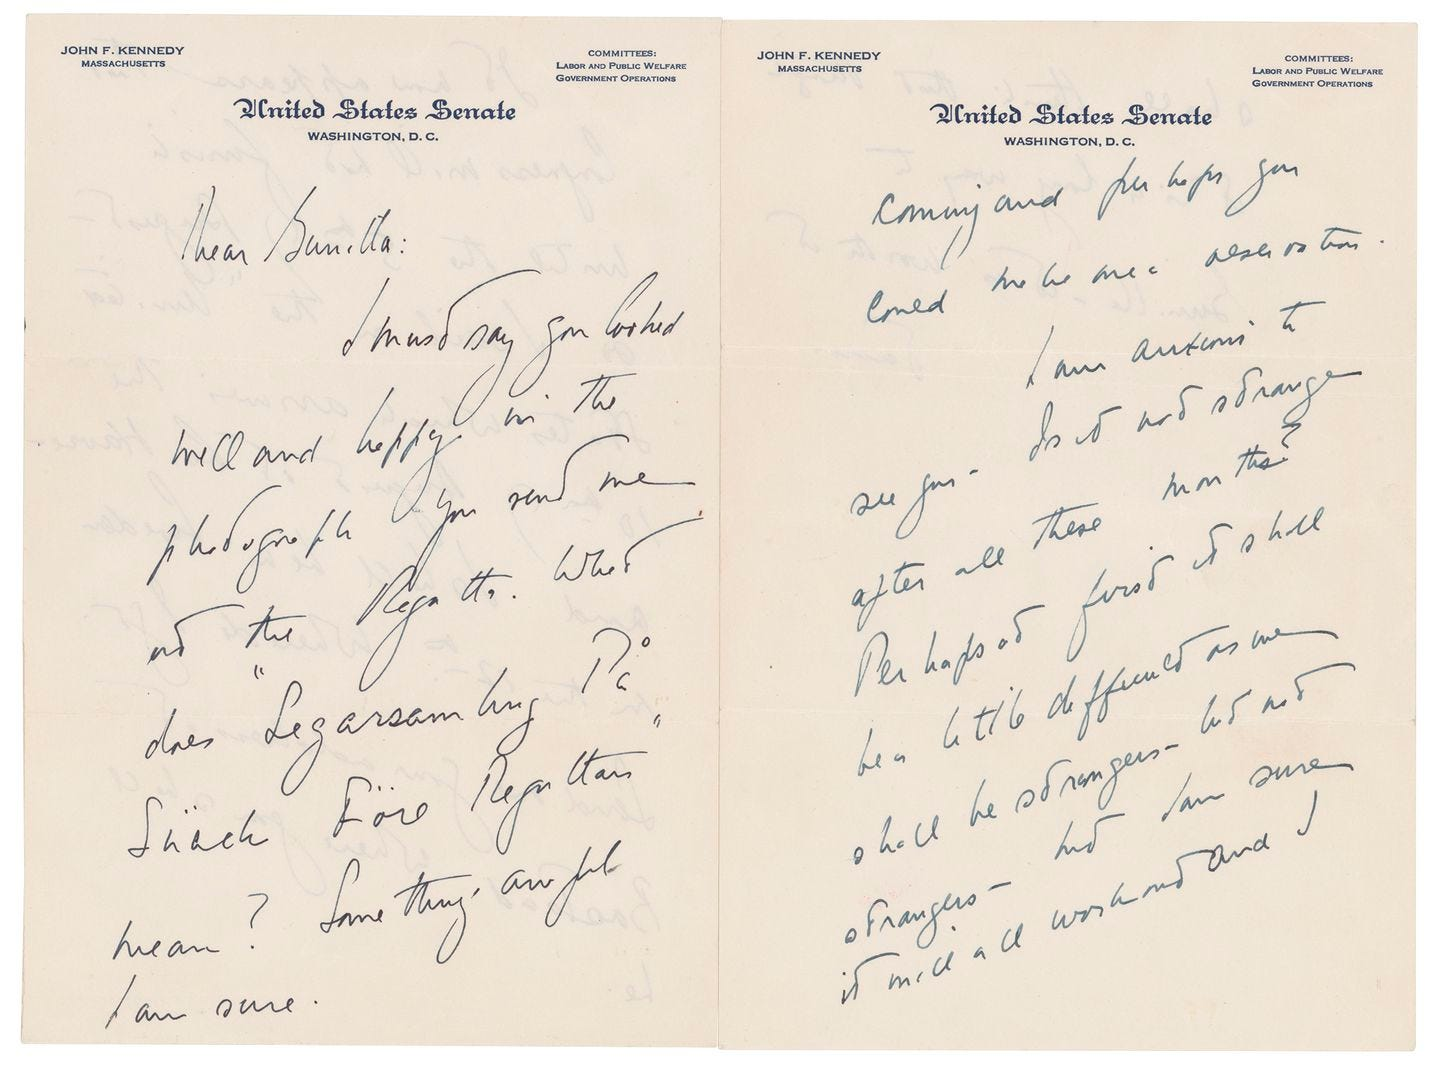 A love letter that John F. Kennedy wrote to a Swedish paramour a few years after he married Jacqueline Bouvier.